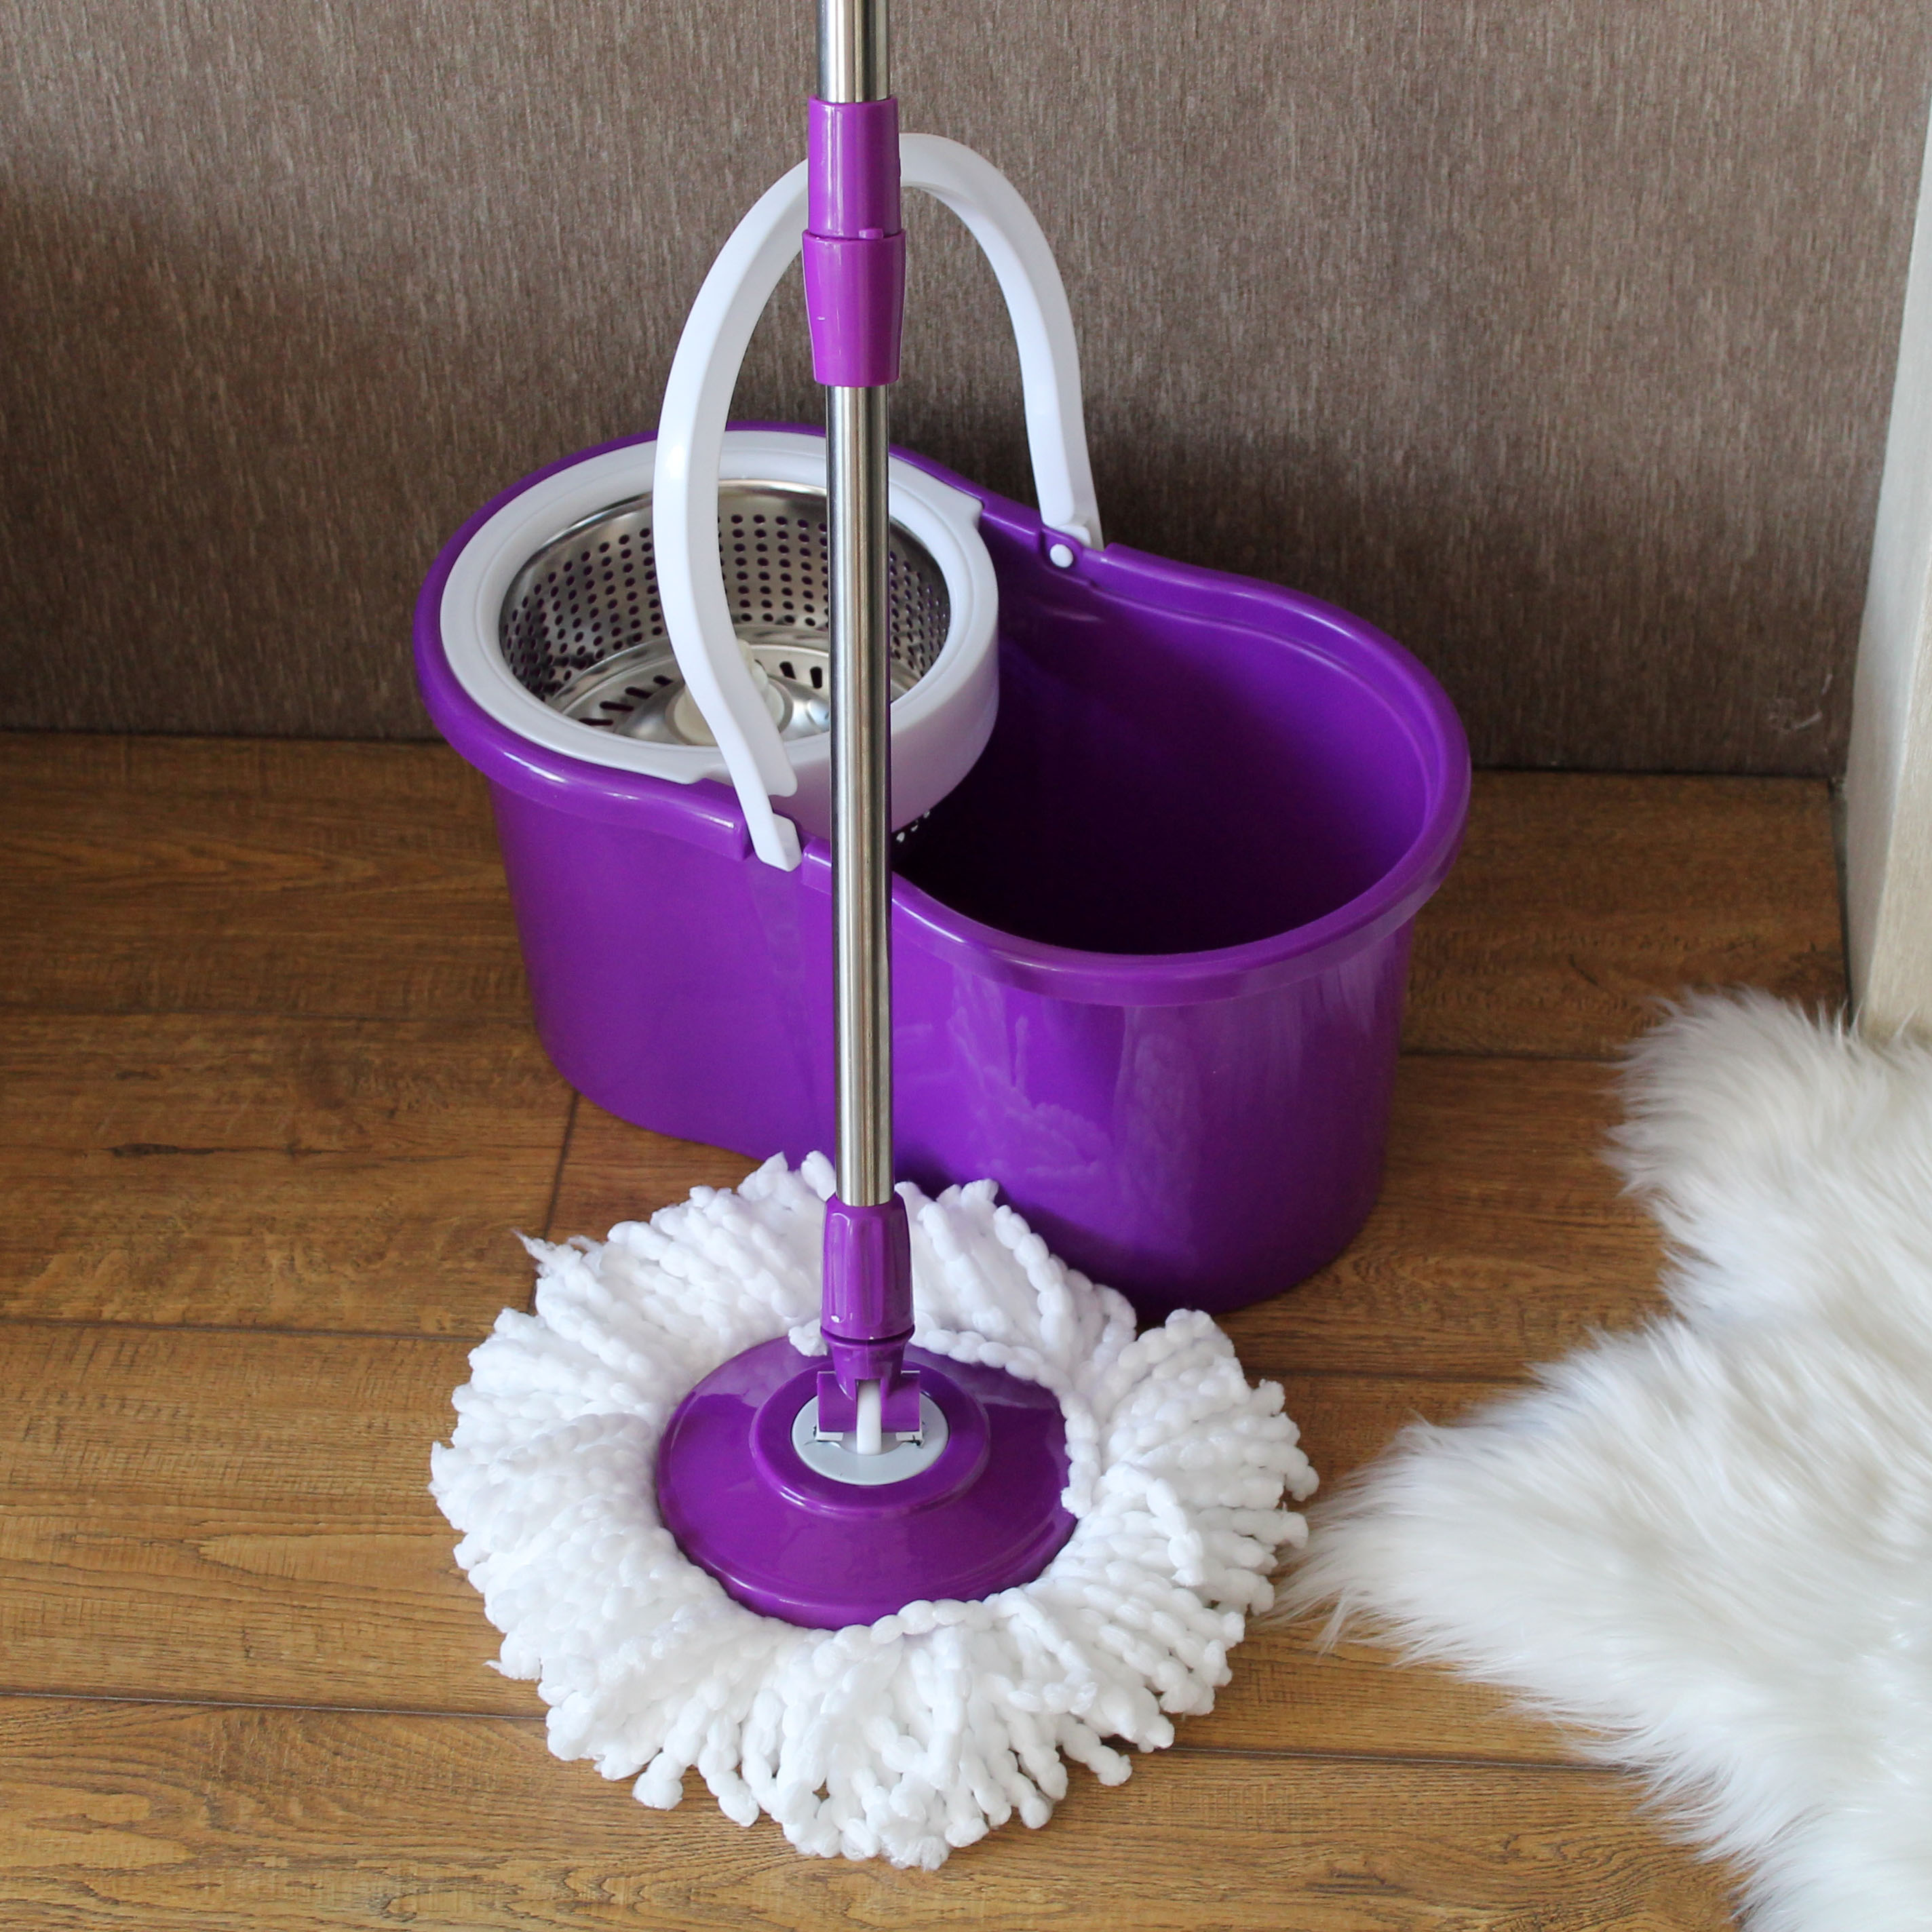 SOKOLTEC Mop Bucket Hand Free Wringing Stainless Steel Mop Self Wet And Cleaning System Dry Cleaning Microfiber Mop Spin Floor-in Mops from Home & Garden on AliExpress